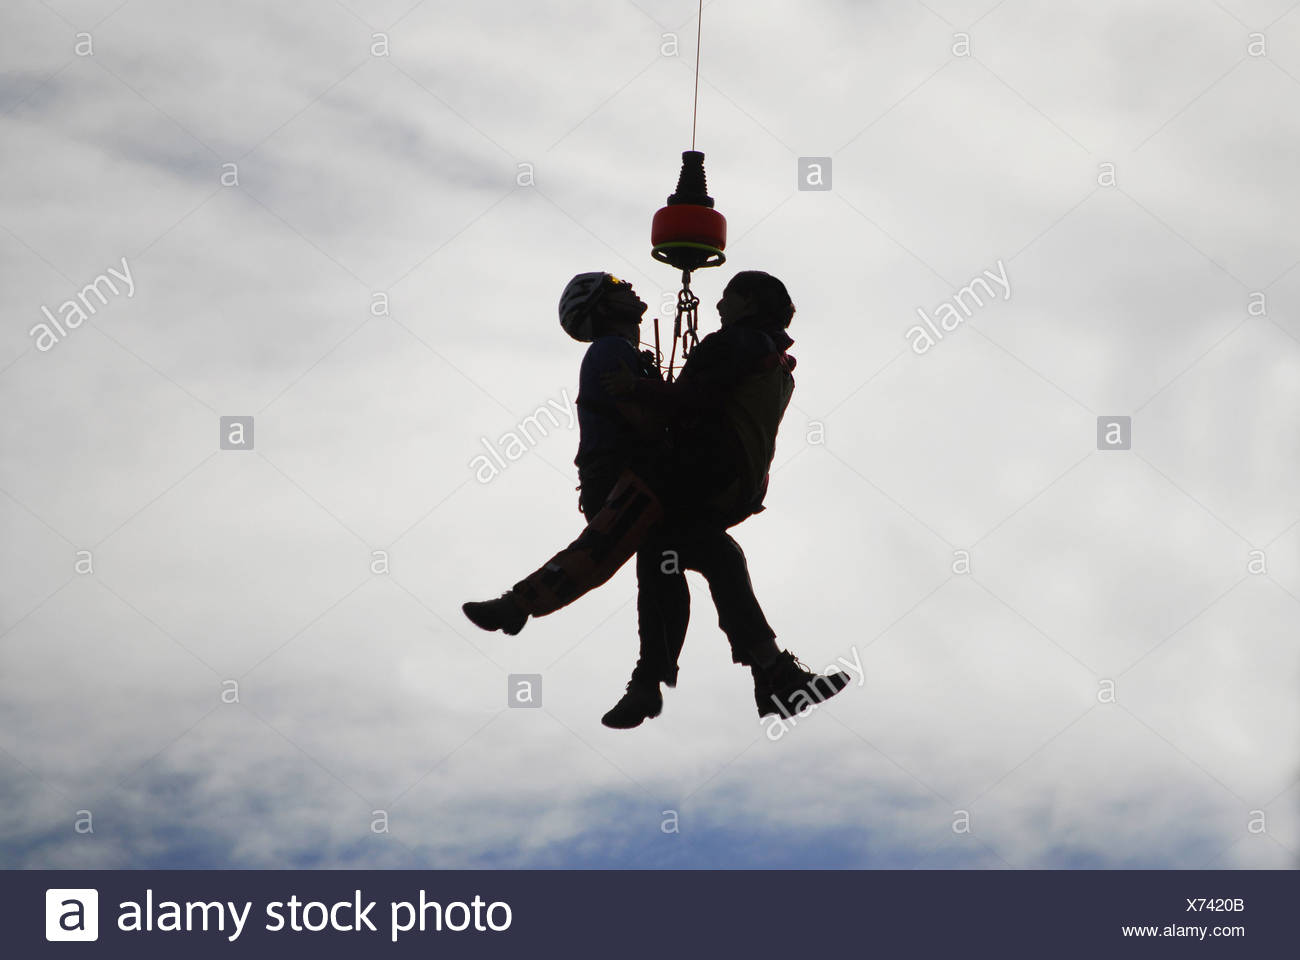 rescue operation - Stock Image